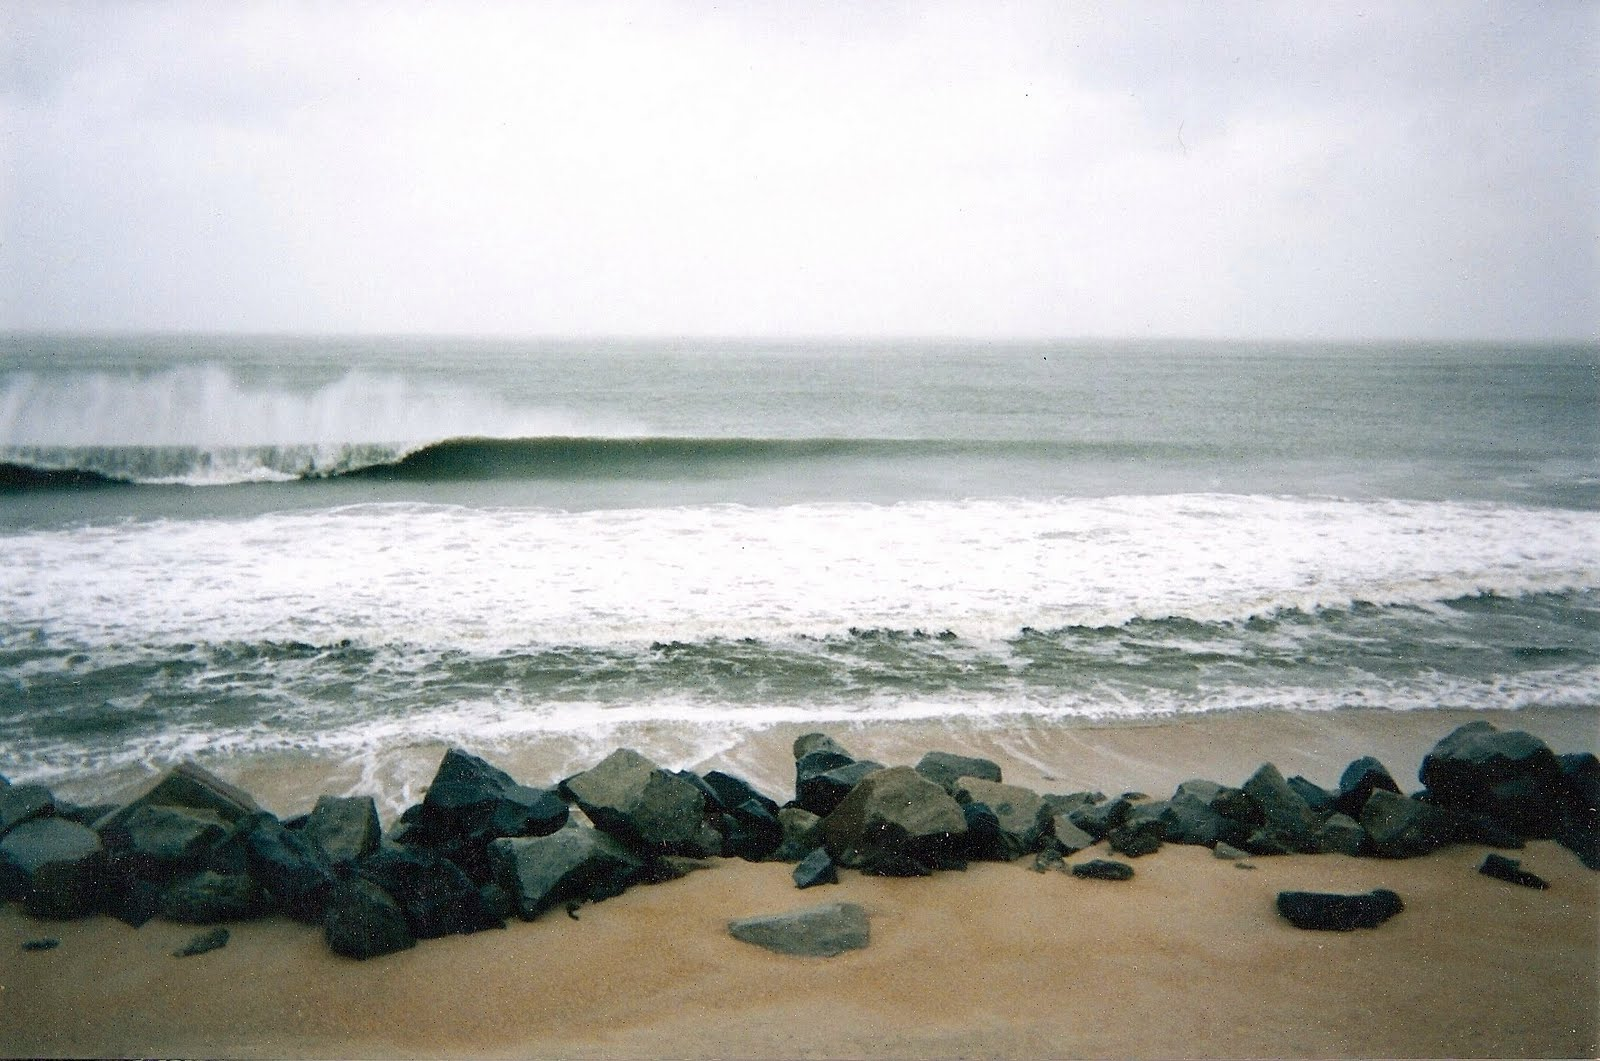 Fit To Surf: 1998 The Kure Beach House, Calif., South Africa, & Bonnie